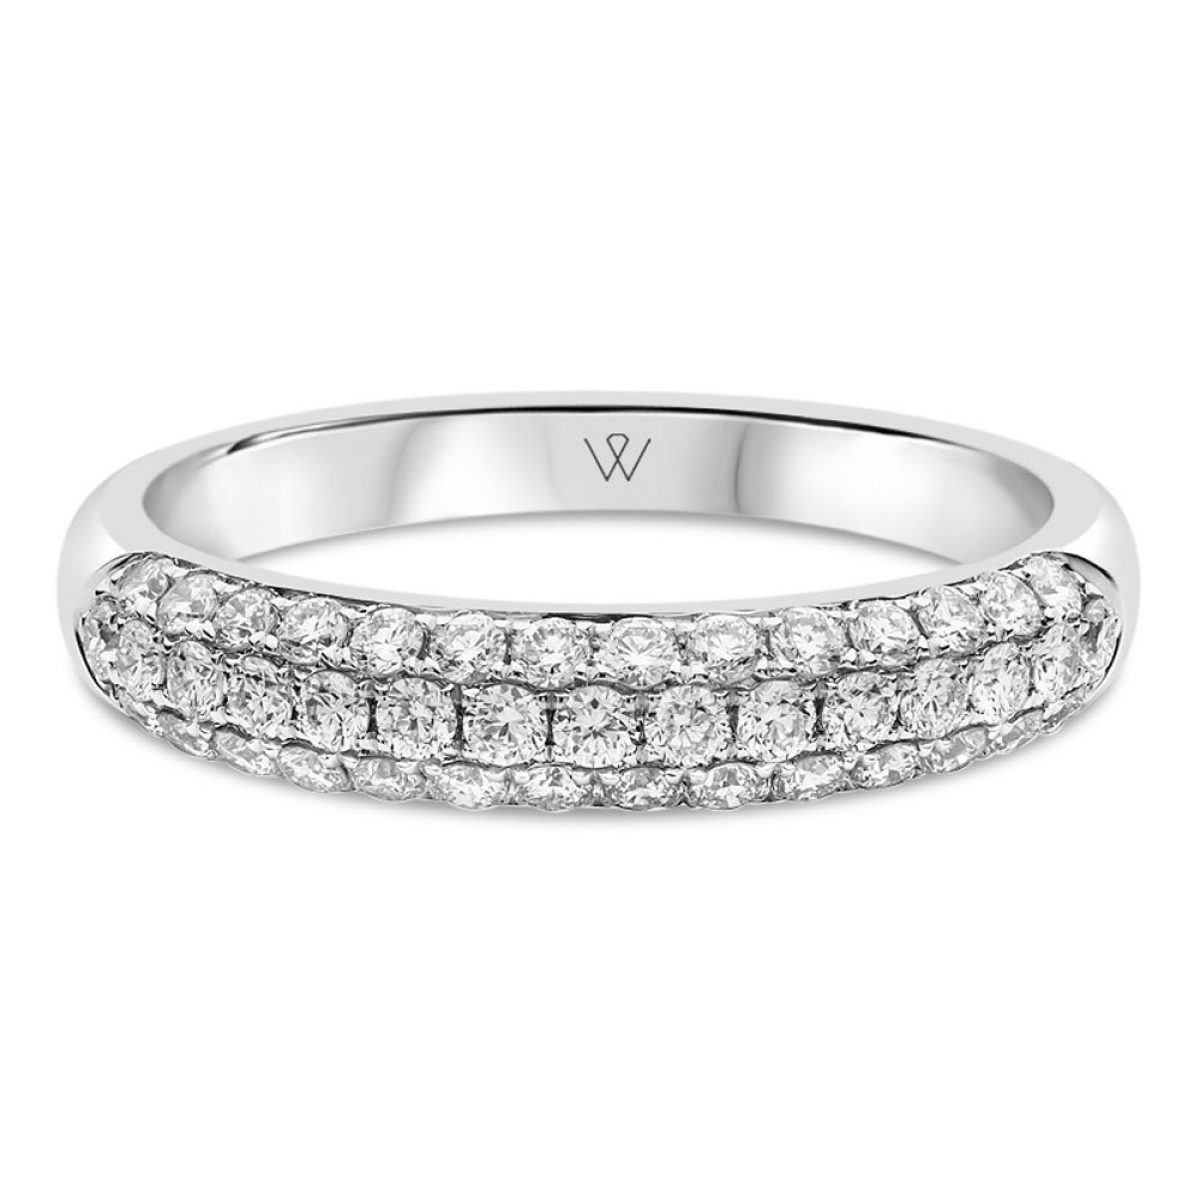 This is a graphic of 47ct White Gold Ladies Pave Set Wedding Ring / Dress Ring Wishart Jewellers